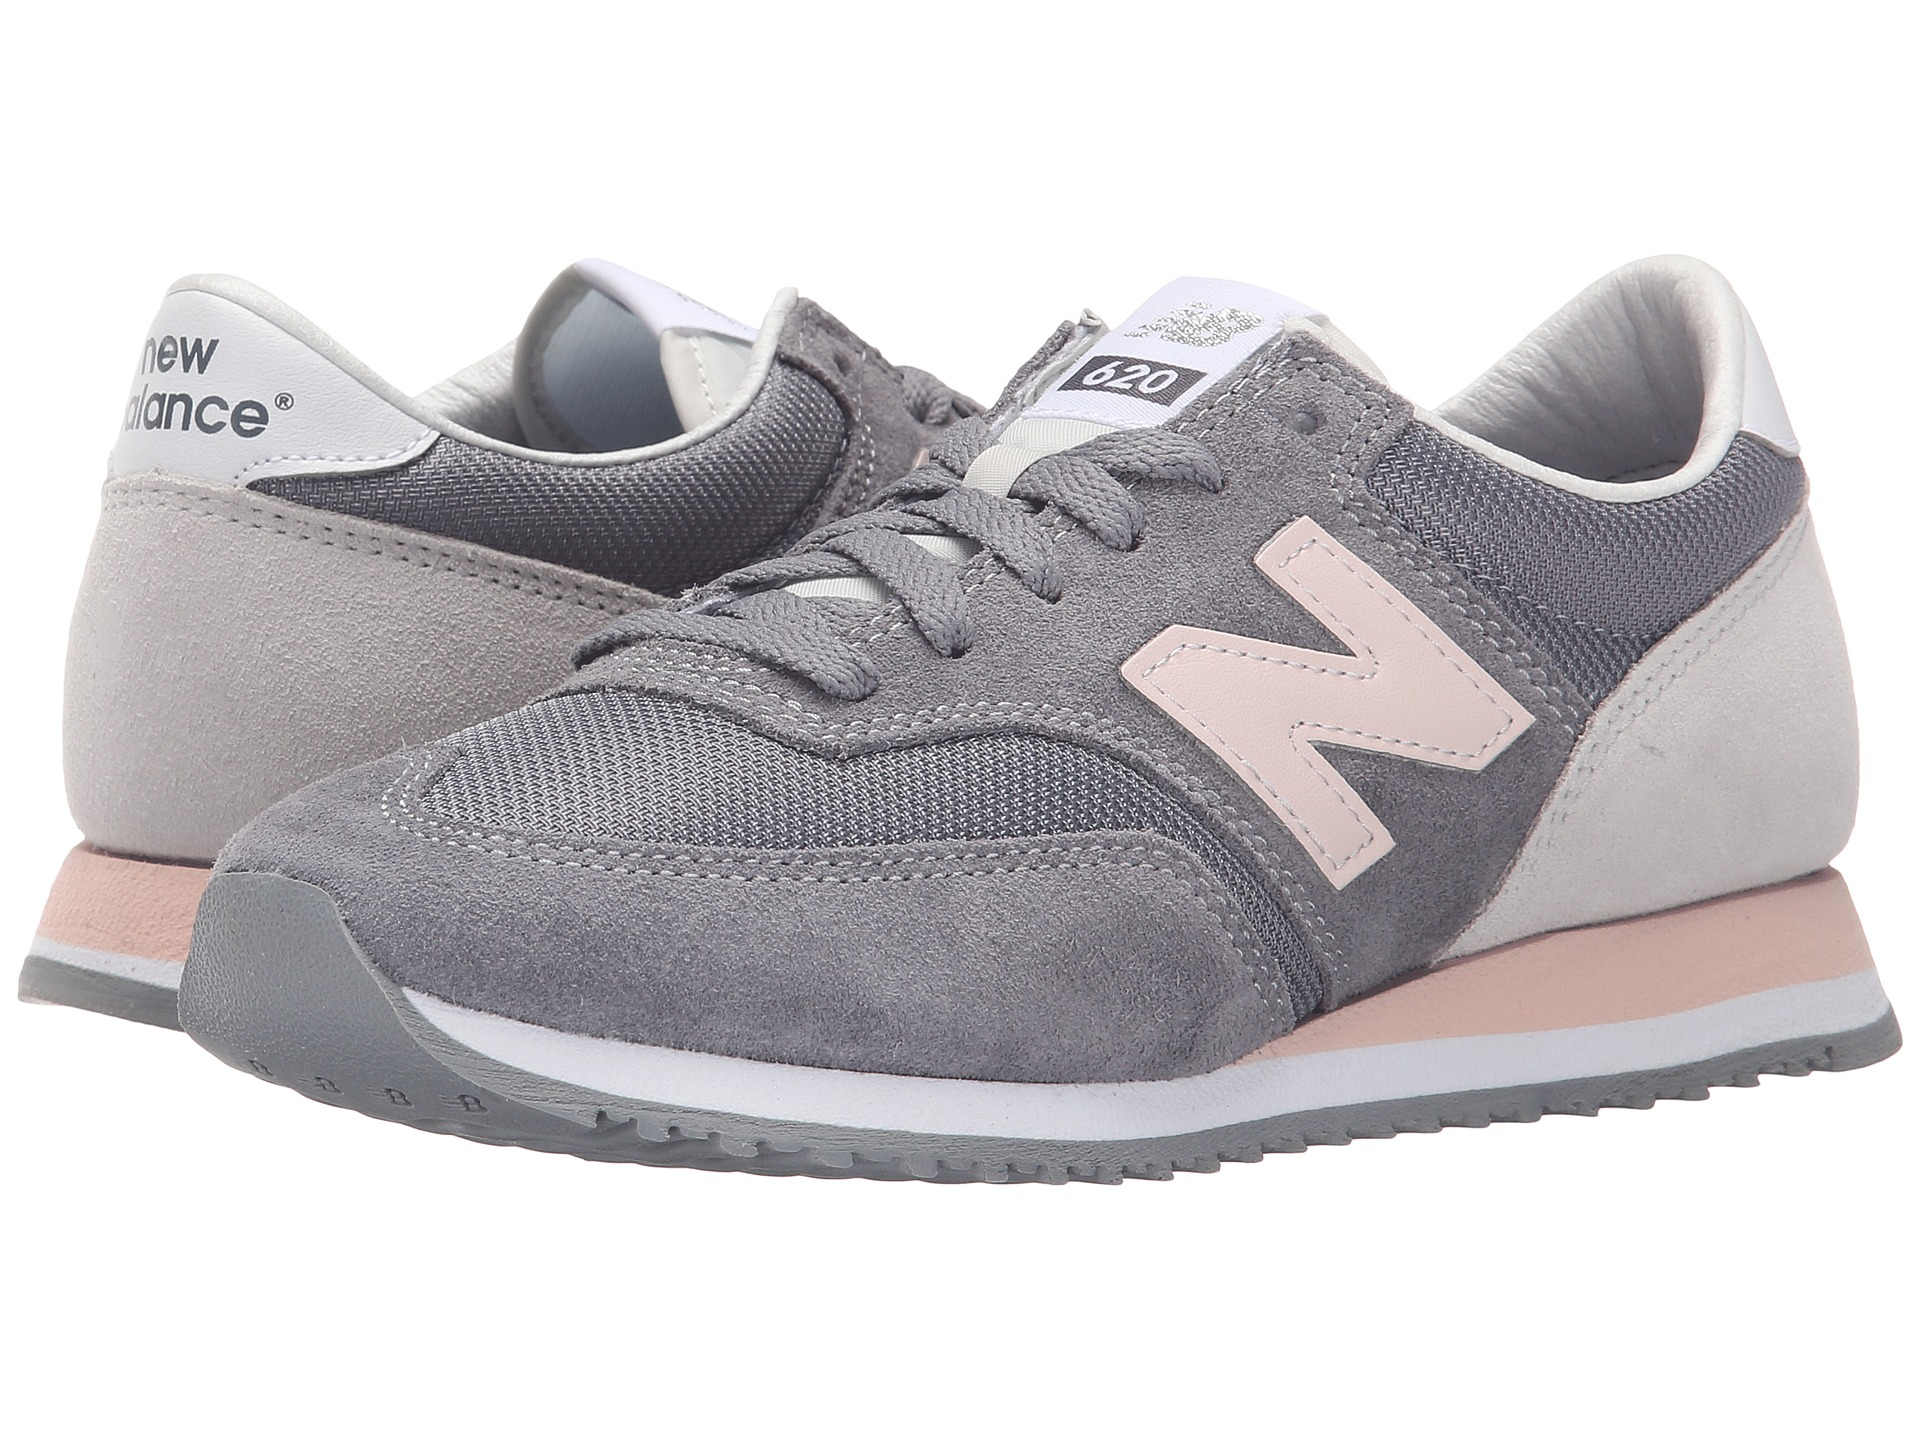 new balance cw620 - sneakers - grey